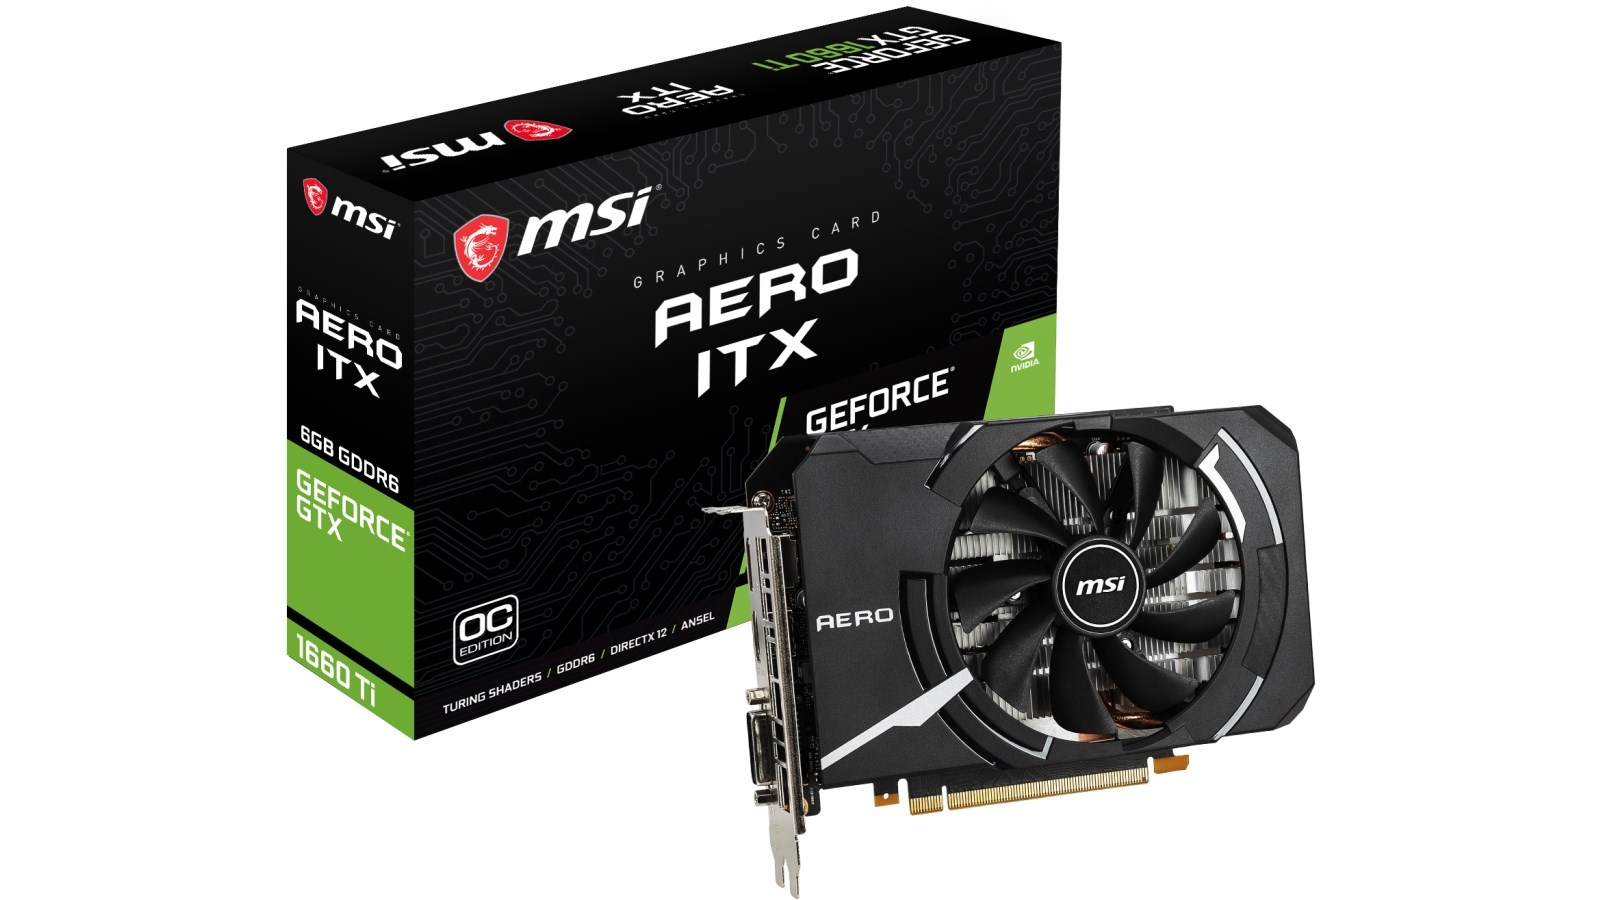 MSI NVIDIA GeForce GTX 1660Ti AERO ITX 6GB OC Graphic Card